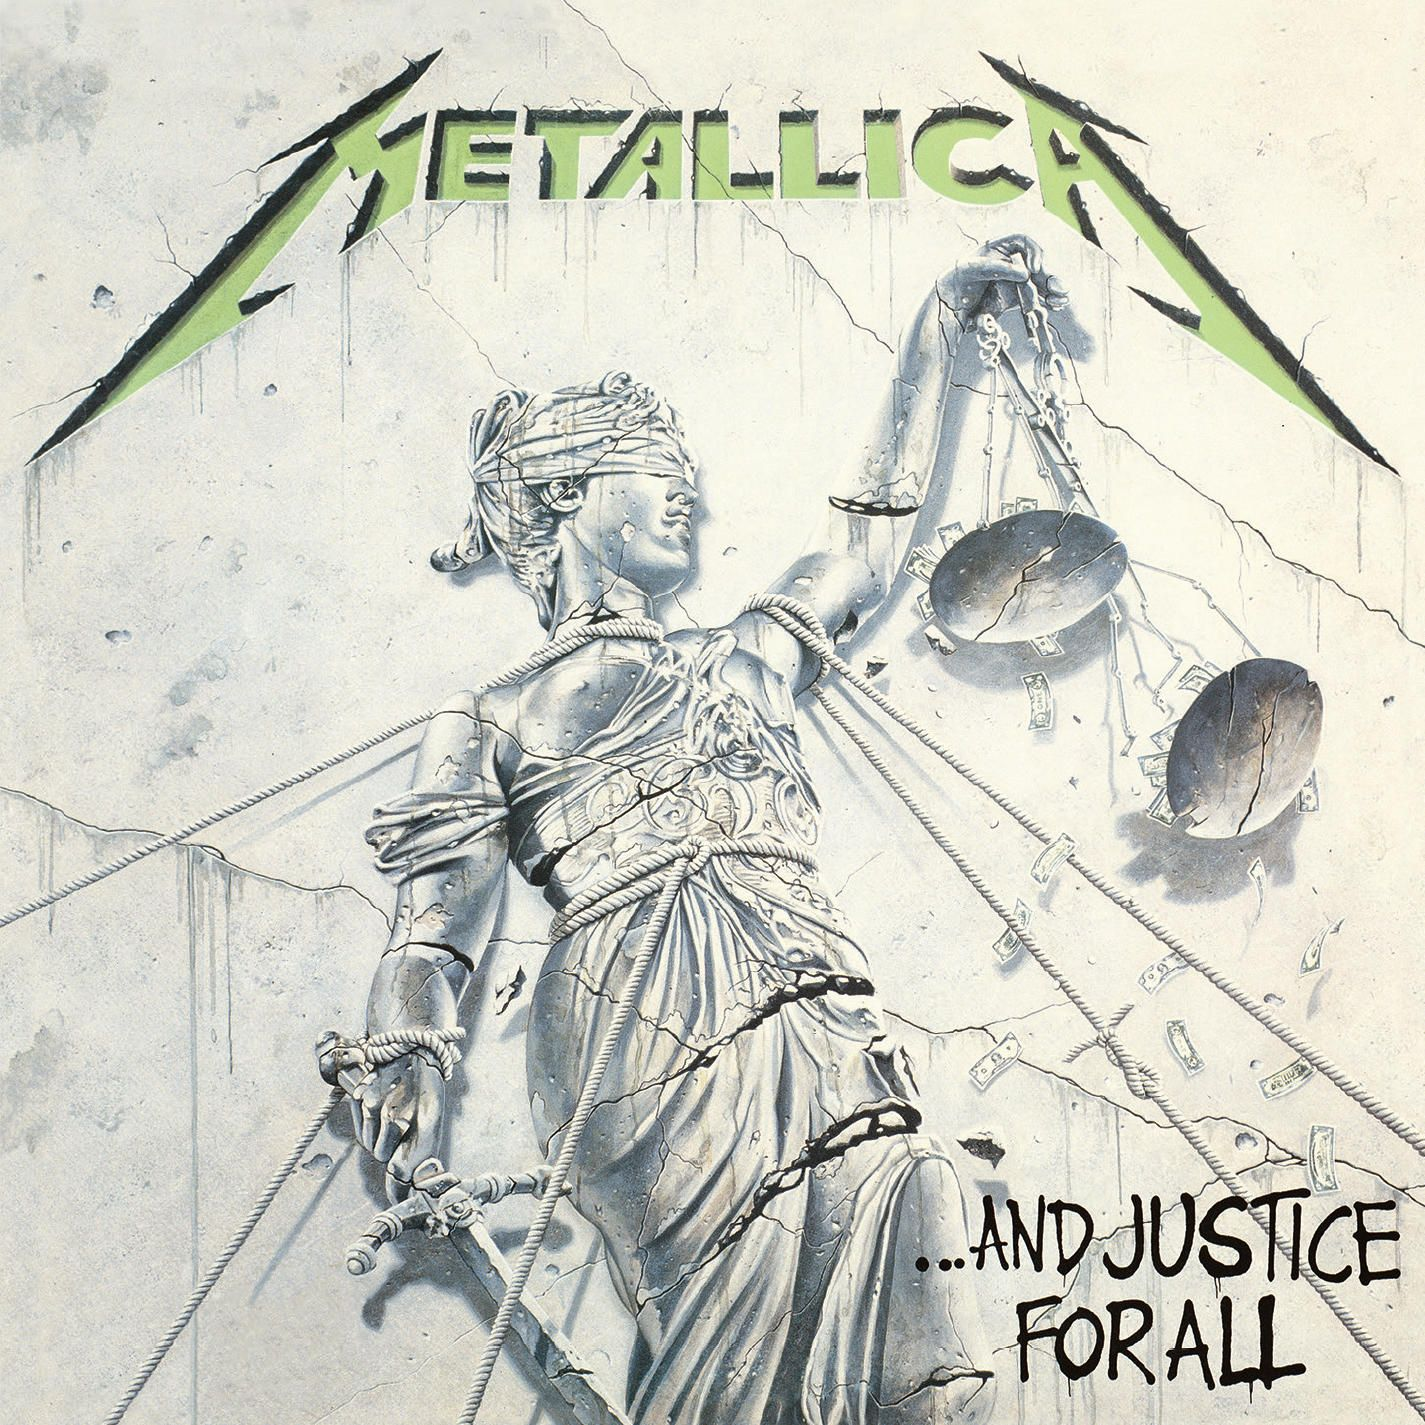 Metallica - And Justice For All album cover